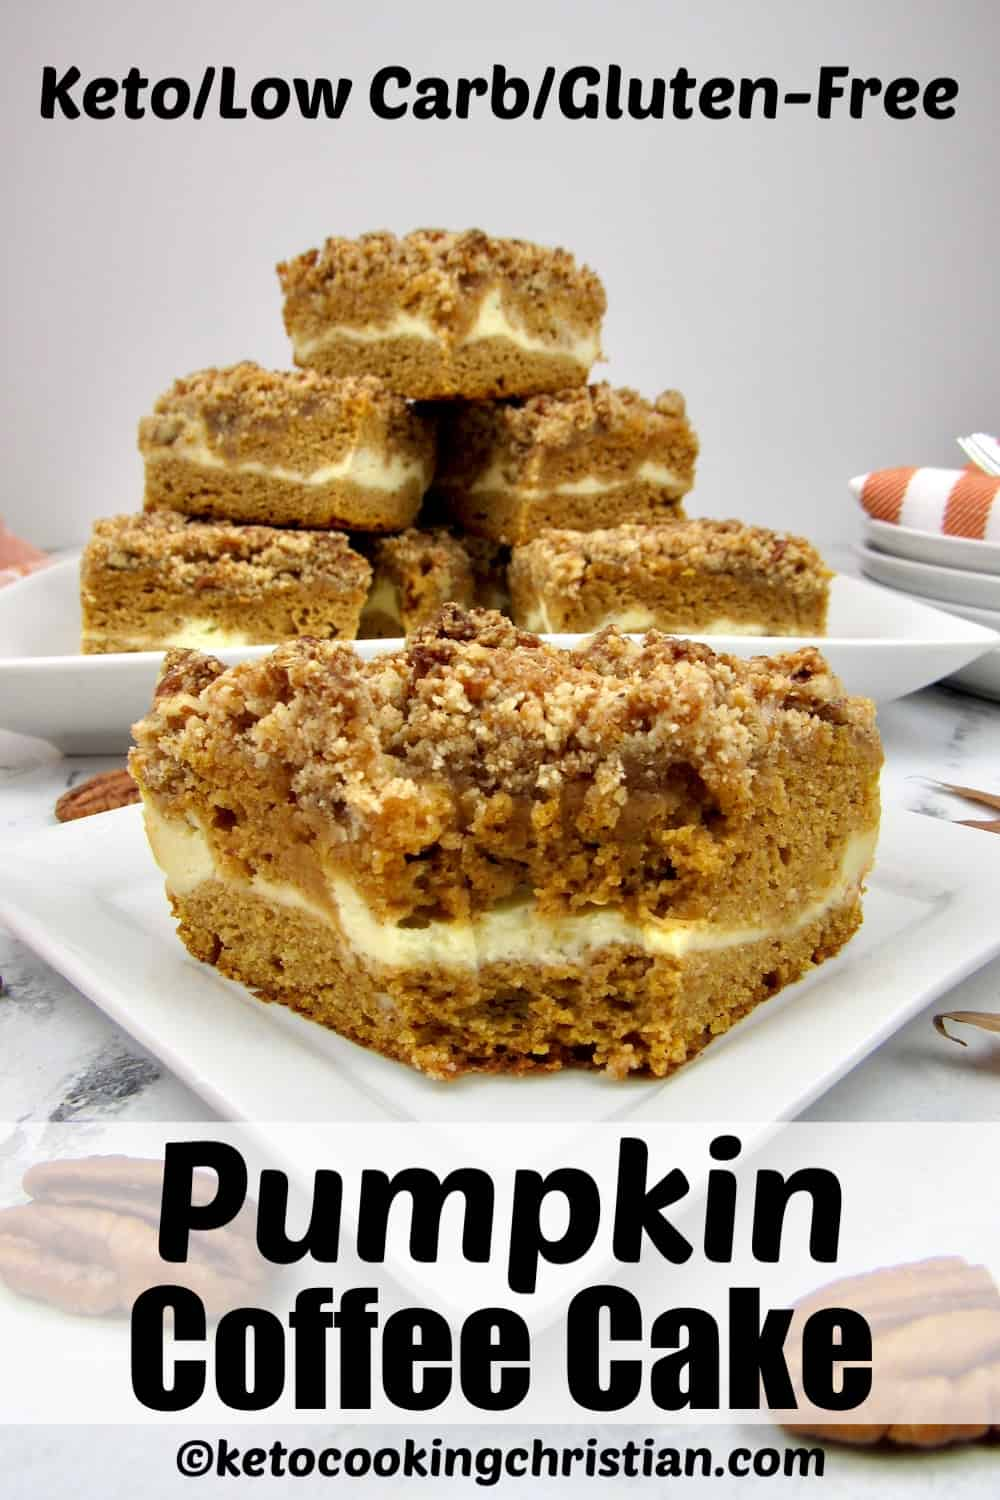 stacked slices of pumpkin coffee cake with closeup of a slice with a bite taken out